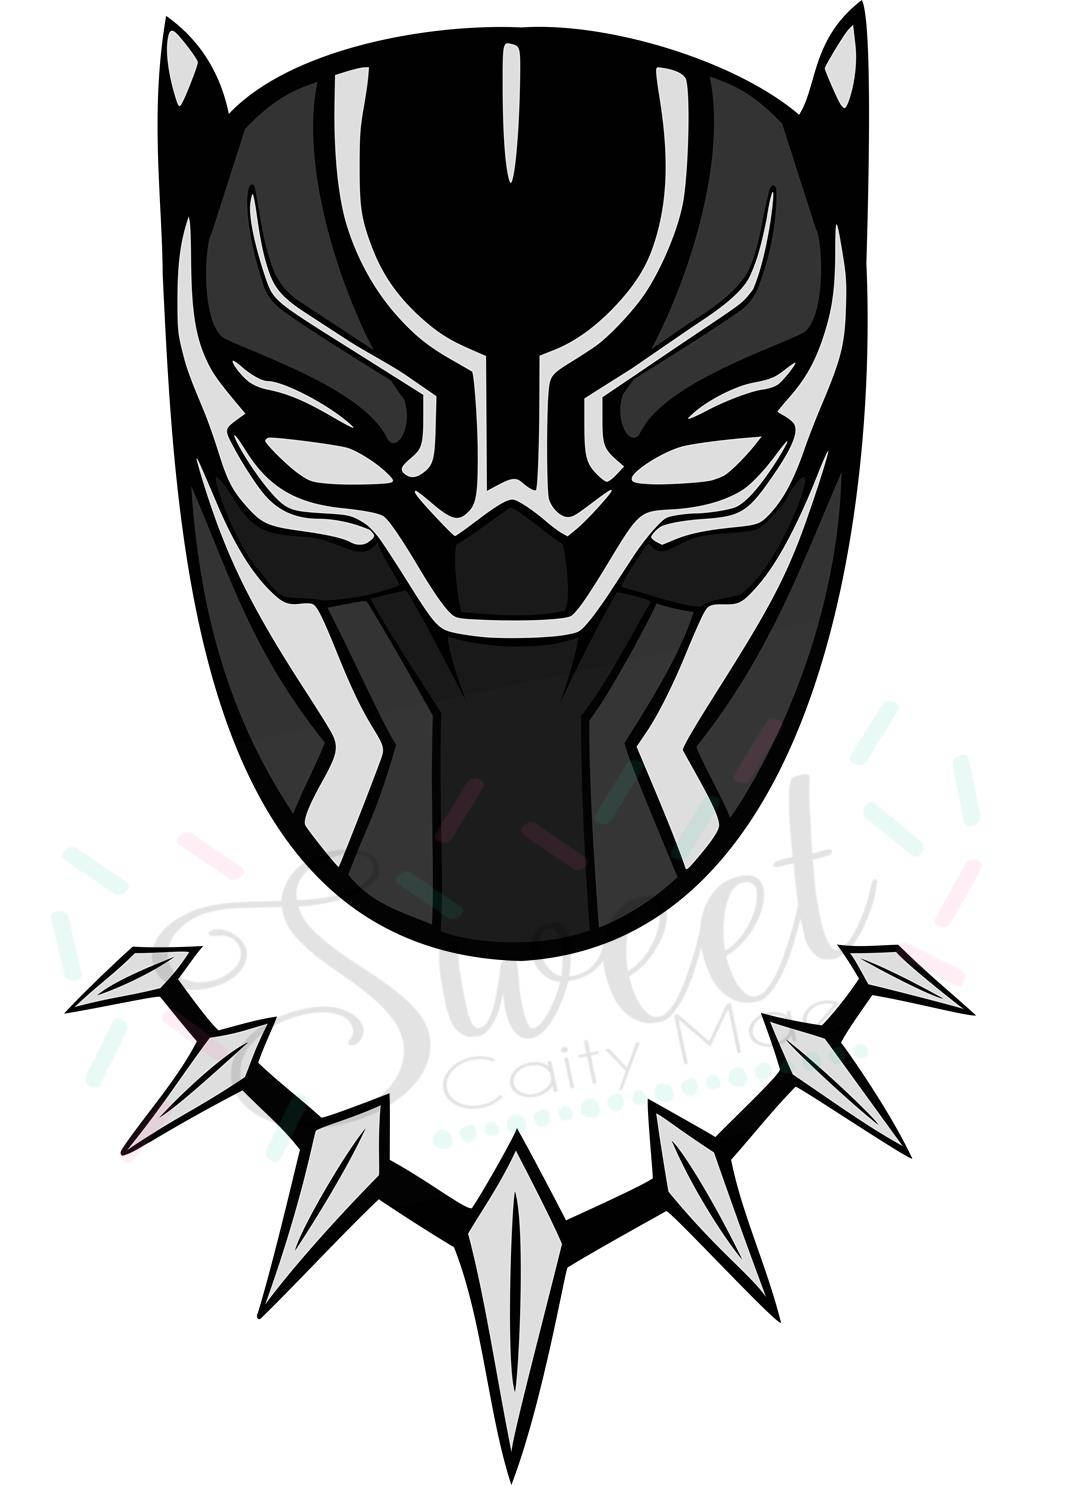 Black panther clipart marvel 2 » Clipart Station.